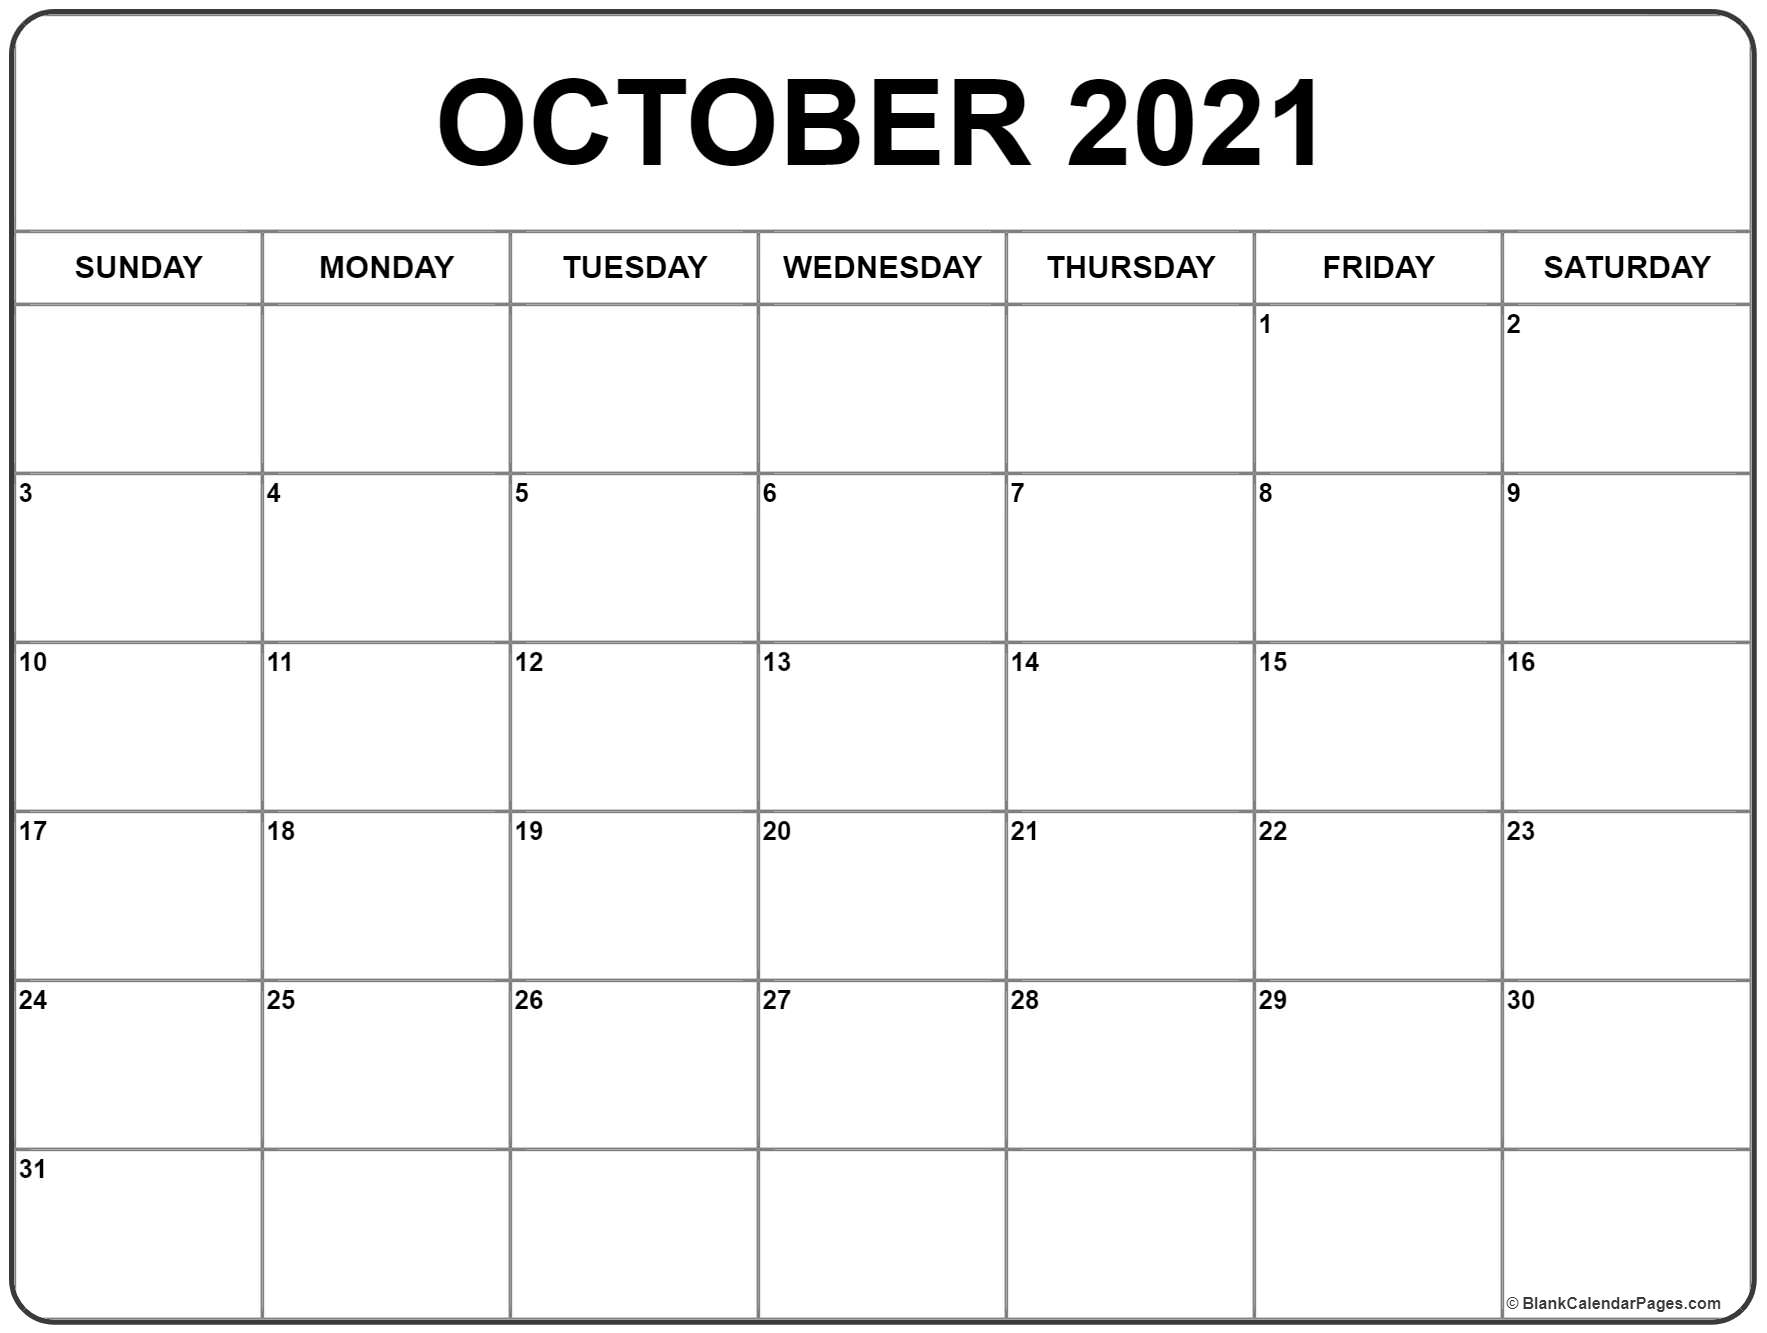 October 2020 Calendar Printable October 2020 calendar | free printable monthly calendars